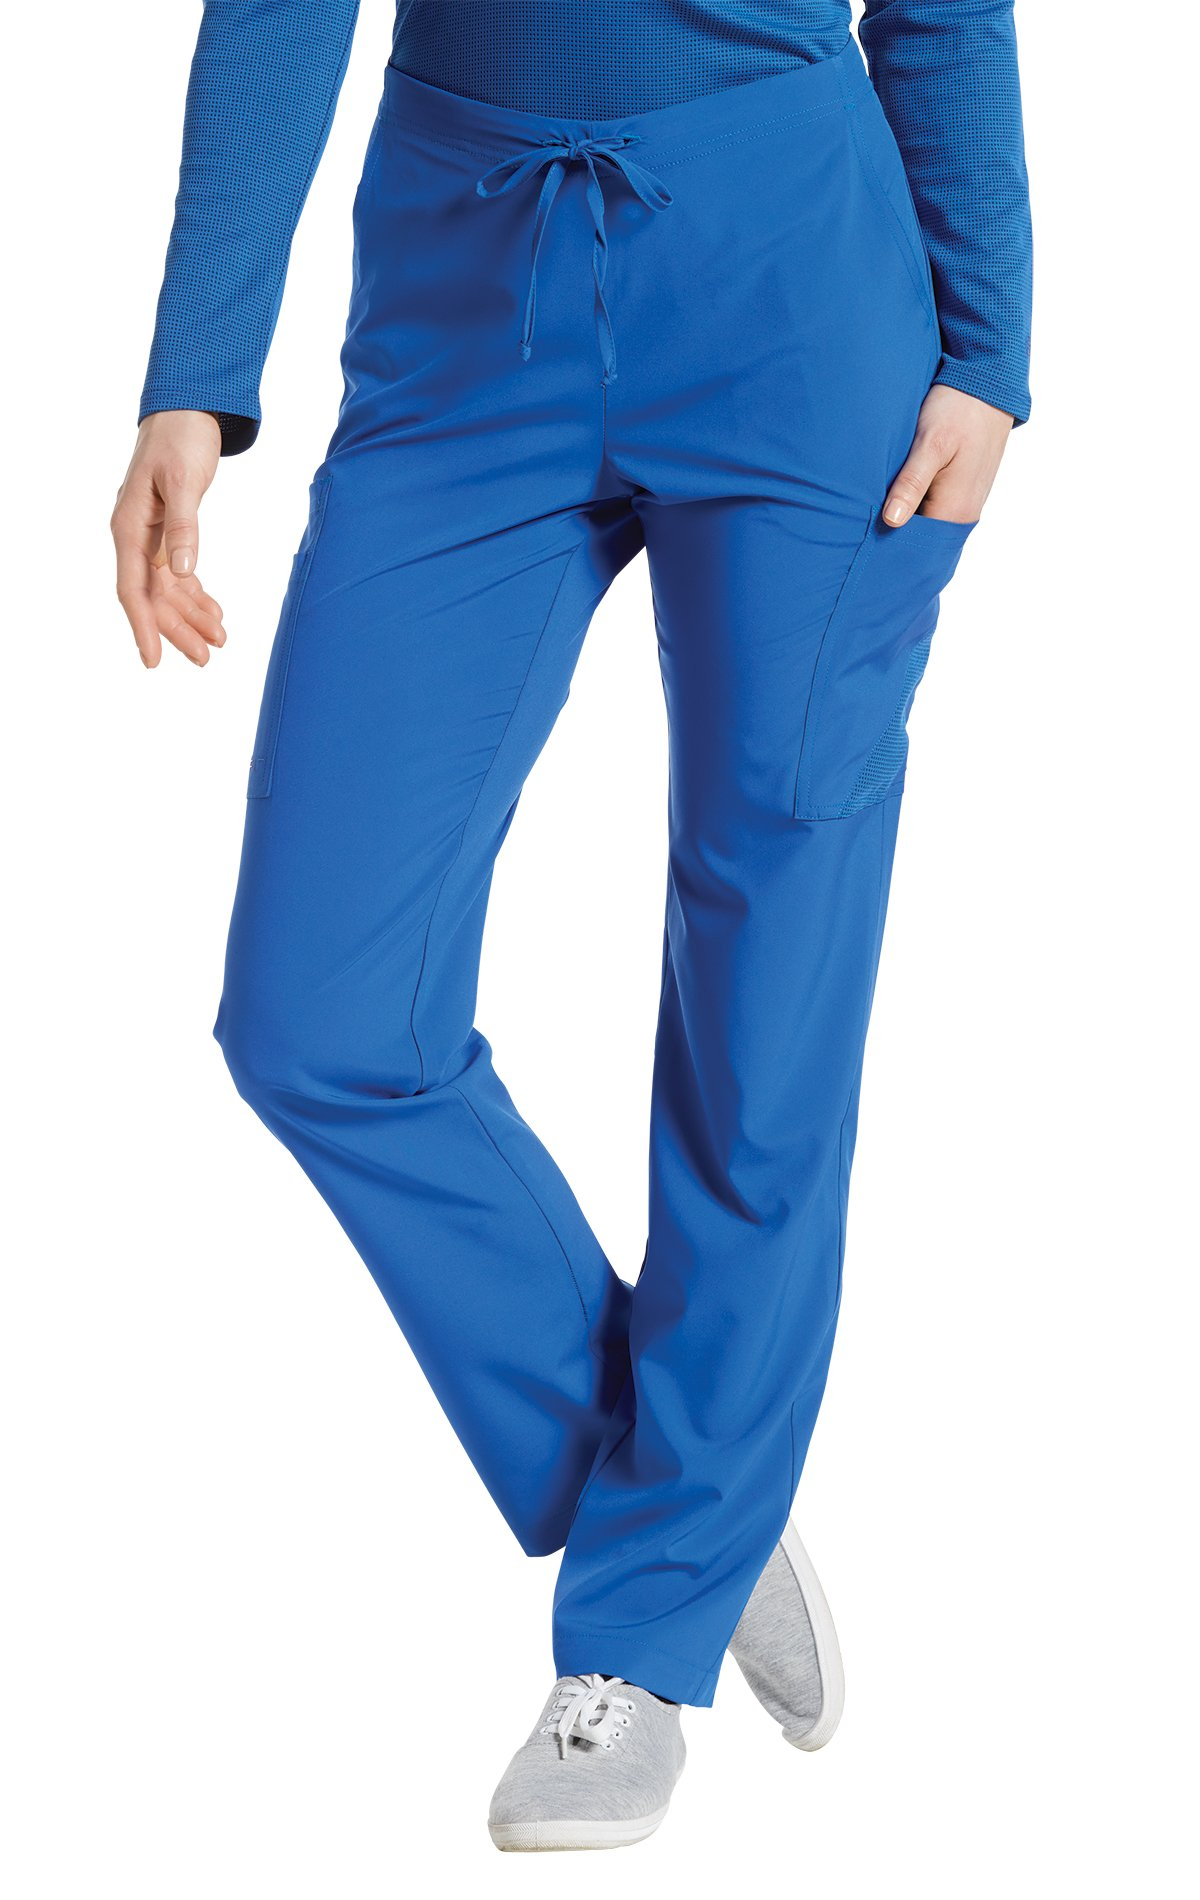 Fit by White Cross Women's 397 Drawstring/Back Elastic Waist Cargo Pant- Royal- Small